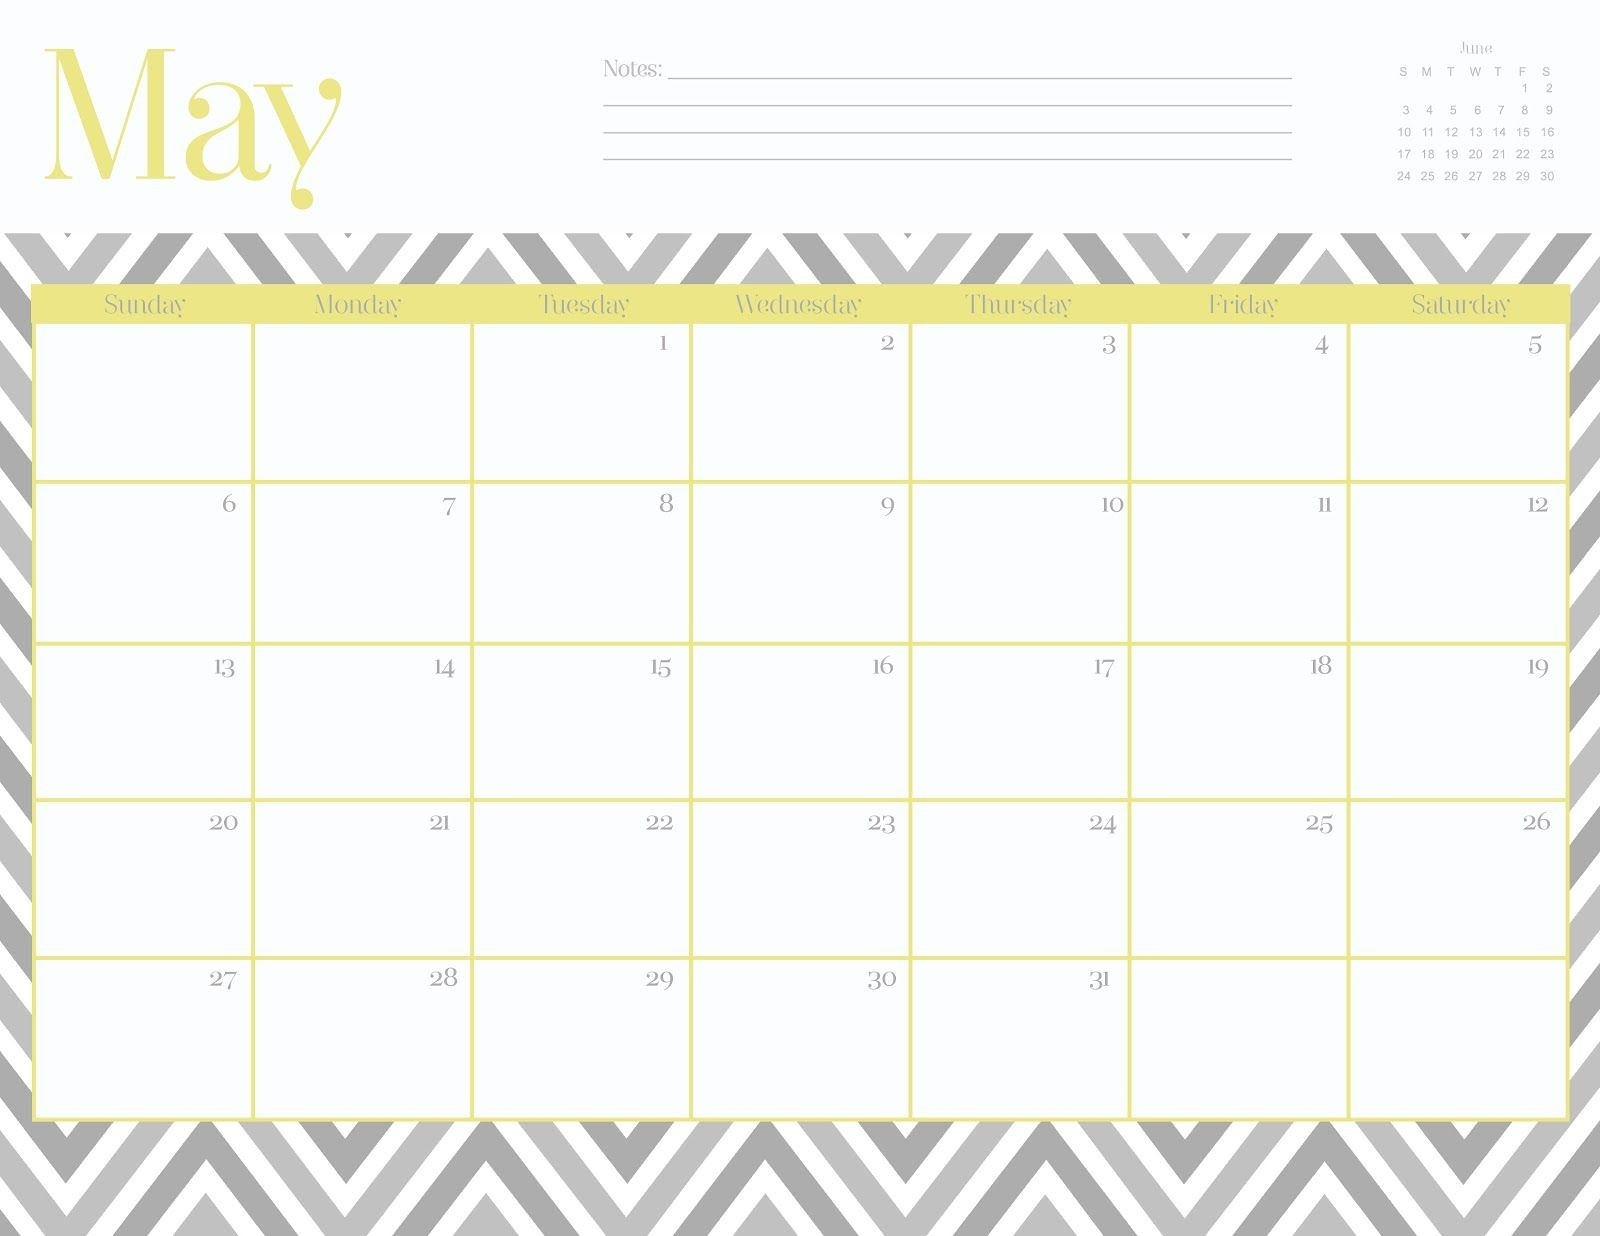 Free Printable Calendars | June Calendar Printable, Blank-Microsoft Template Calendar Coundown